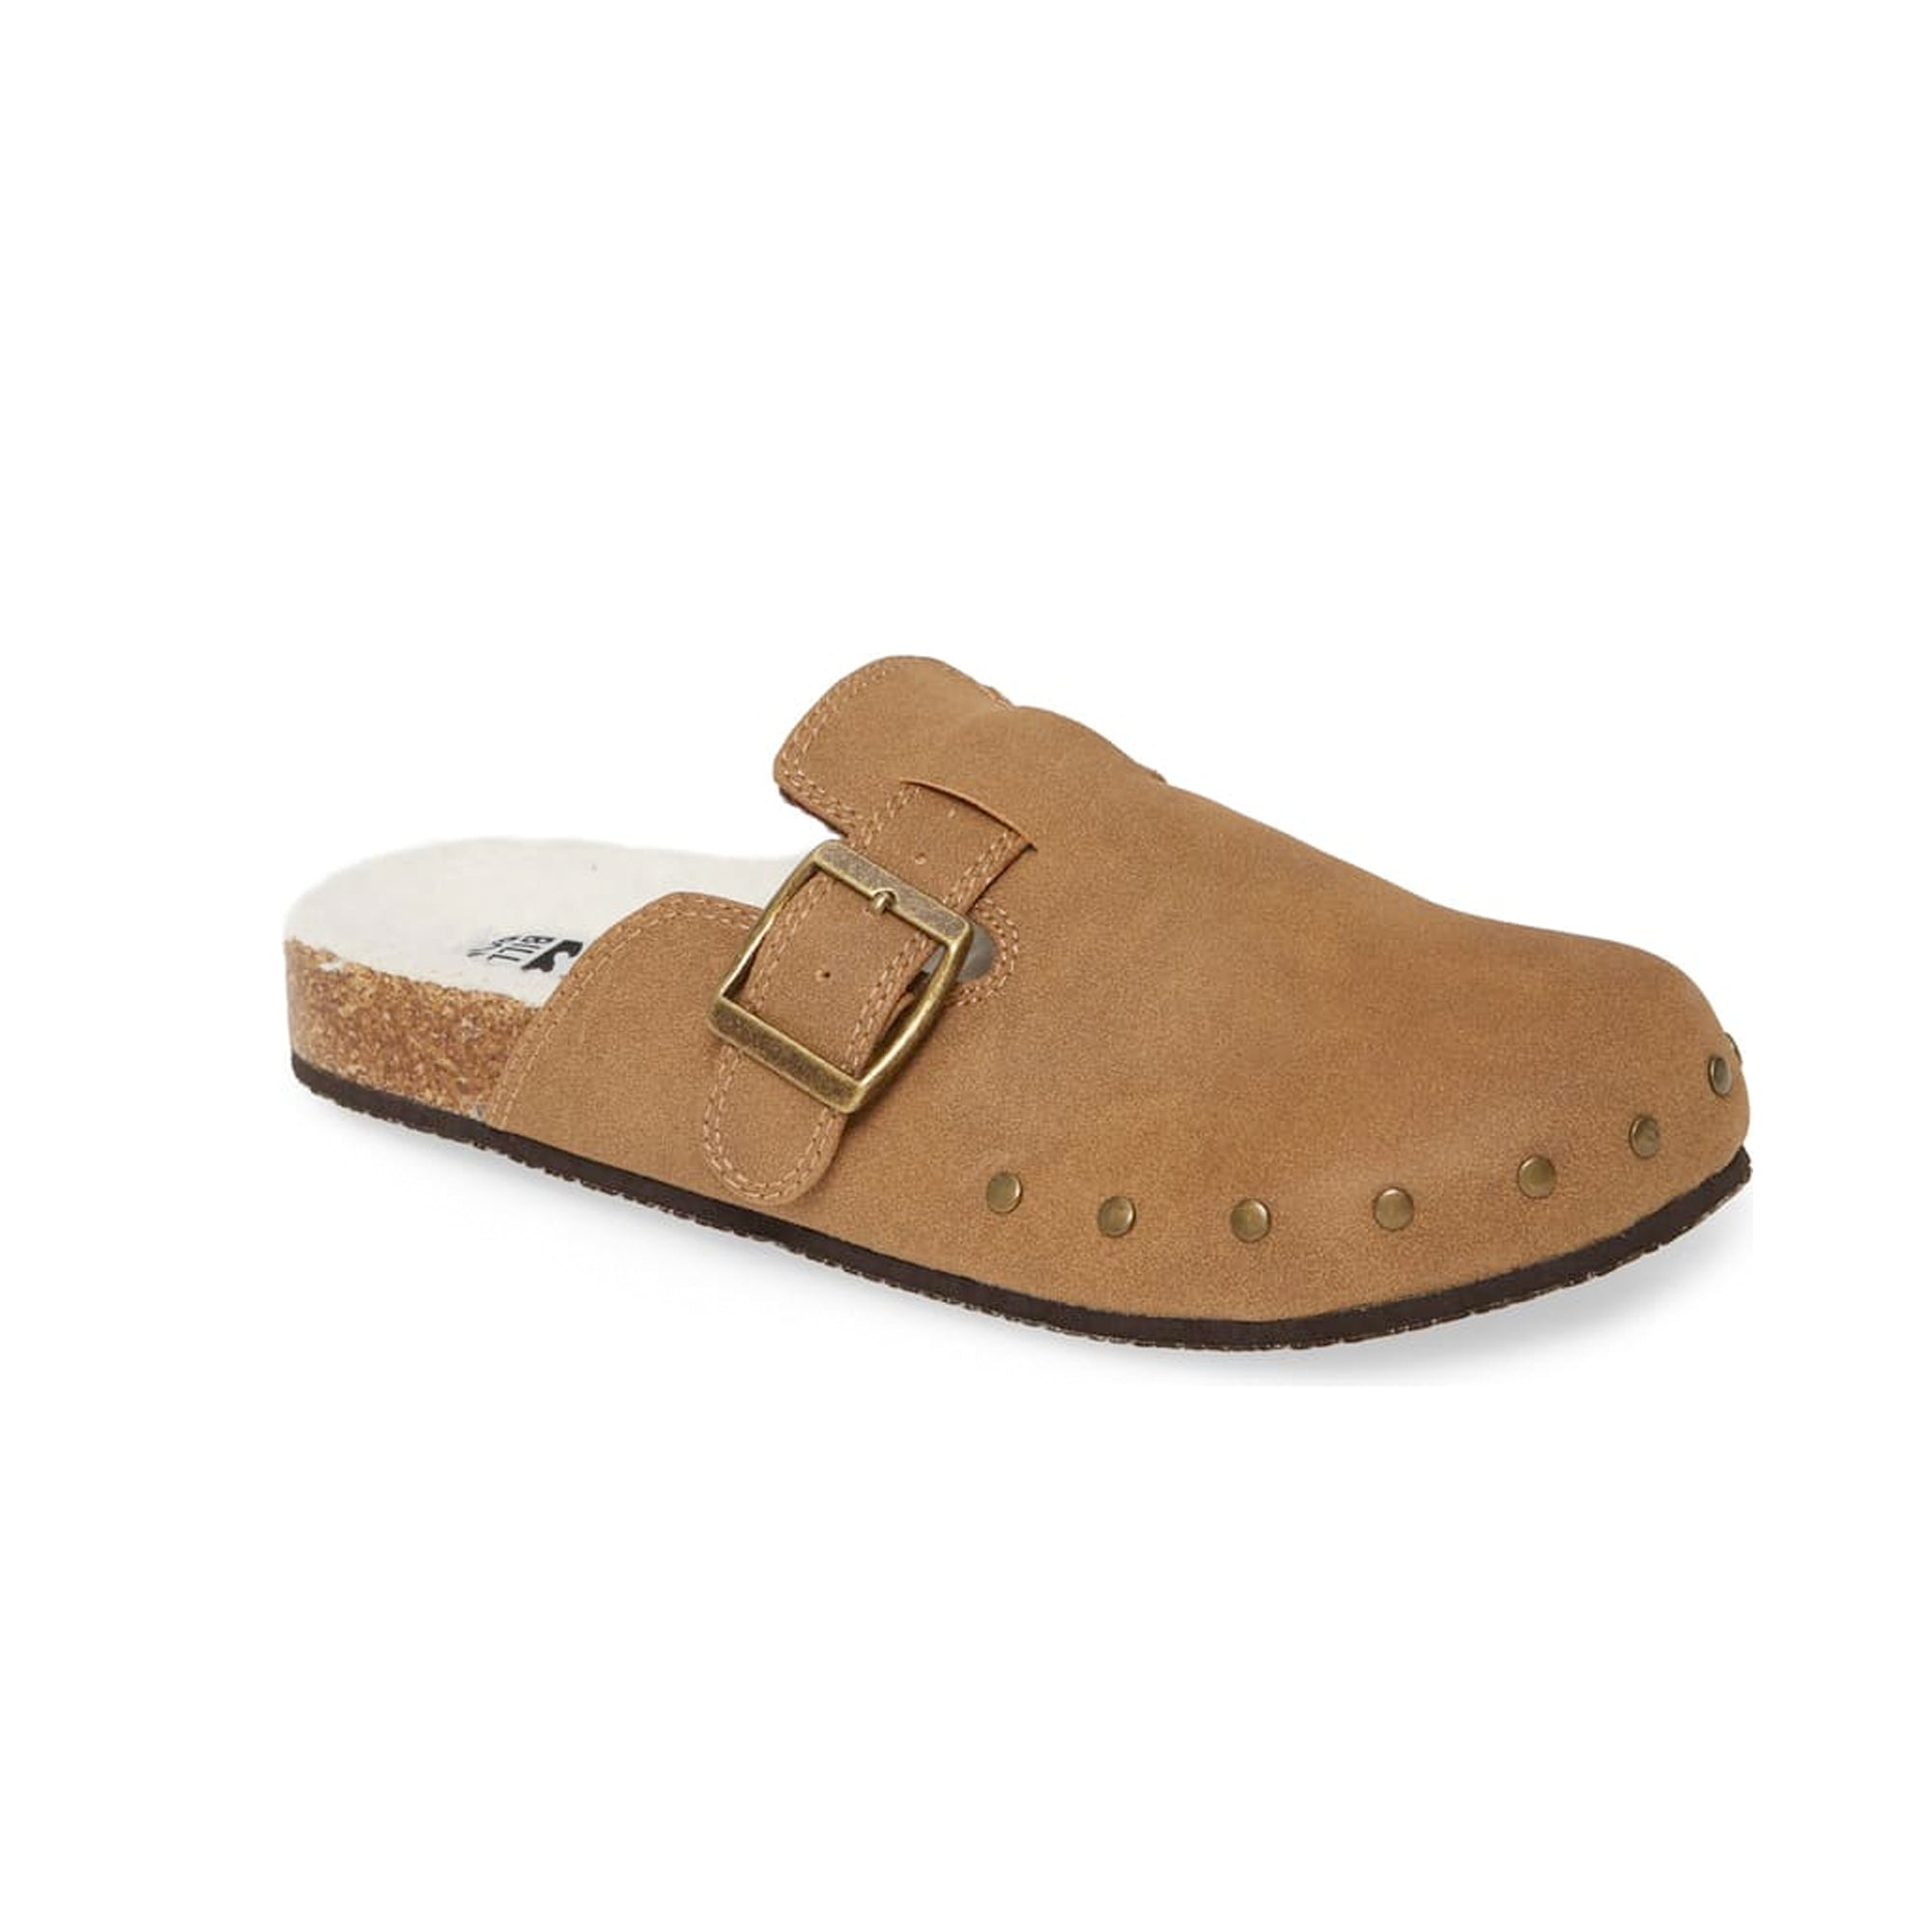 Billabong Lagoon Women's Shoes